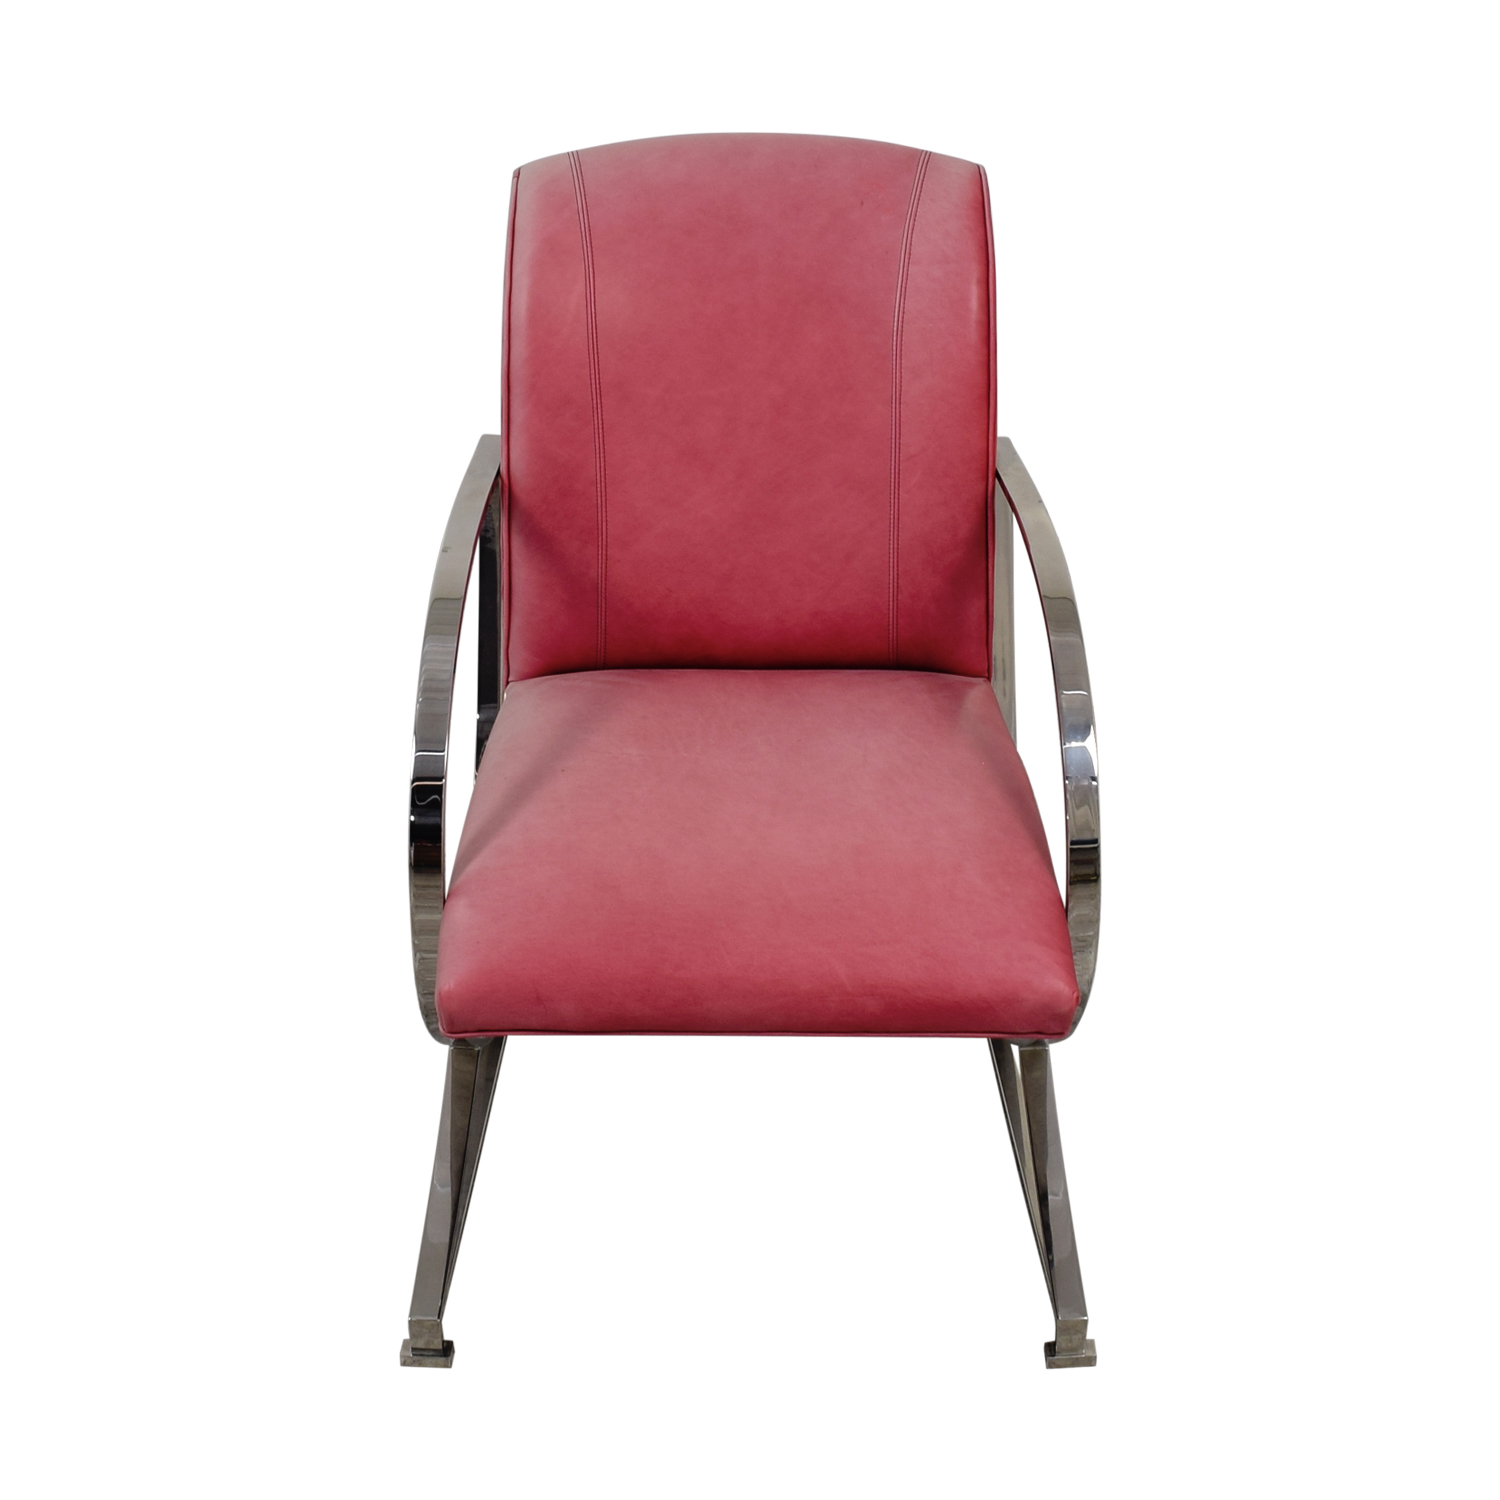 Charmant ... Century Furniture Century Furniture Stainless Steel Pink Leather Chair  Accent Chairs ...